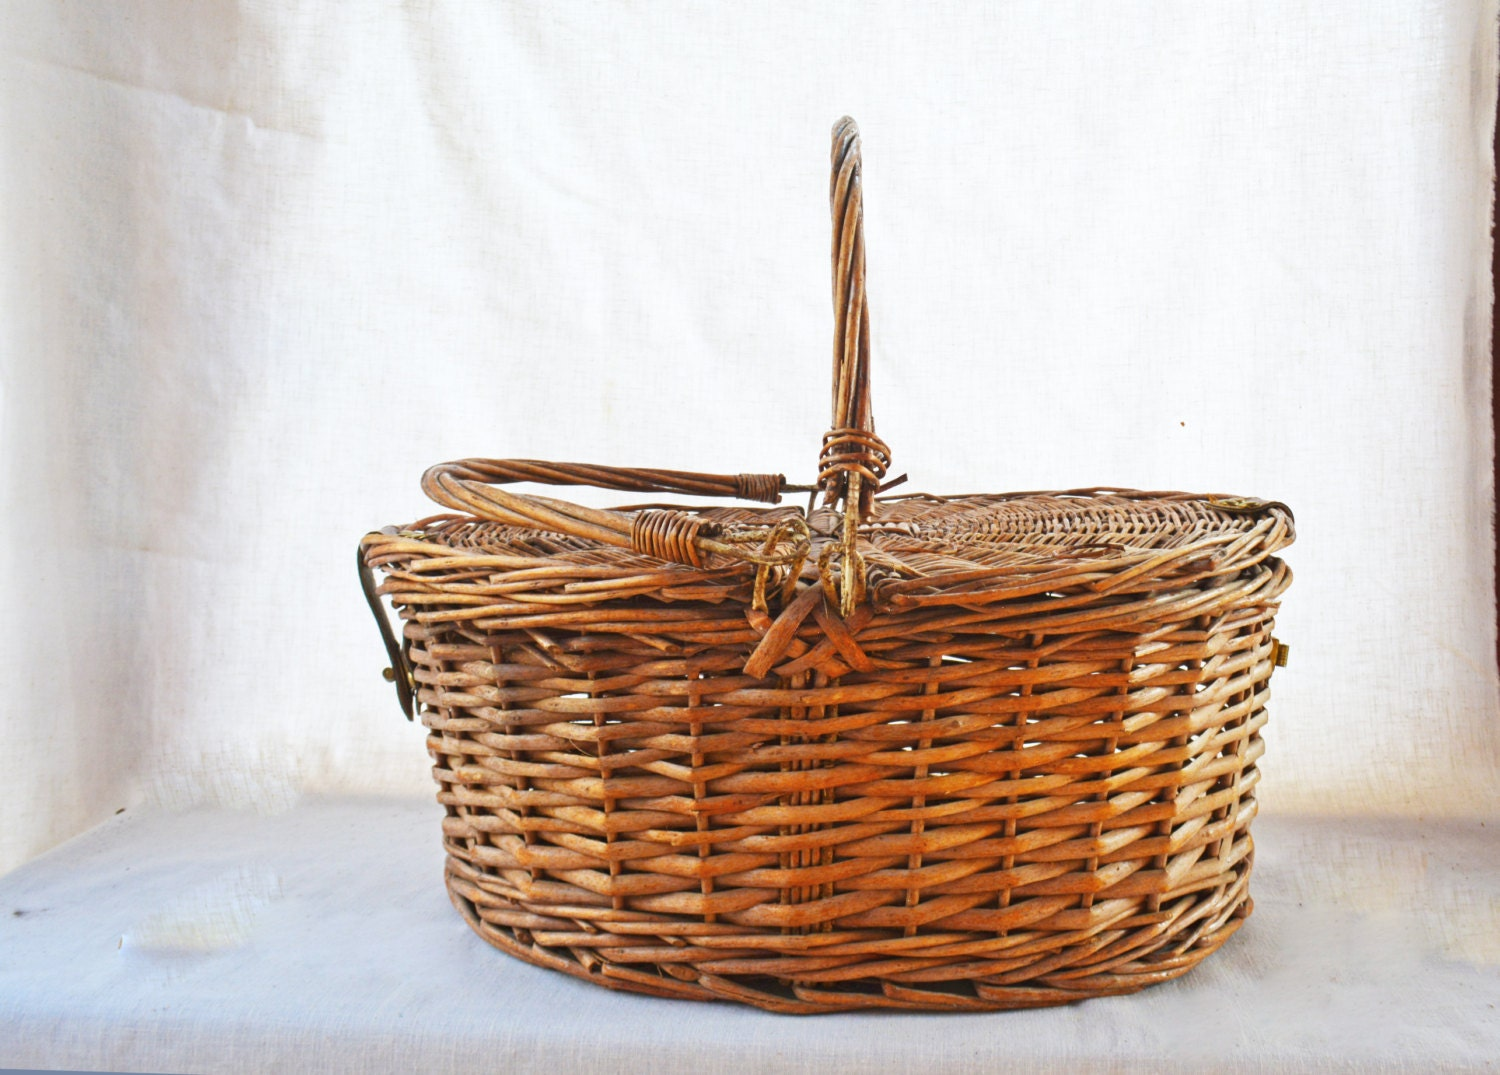 Old wicker basket with lid : Wicker picnic basket with lid storage vintage